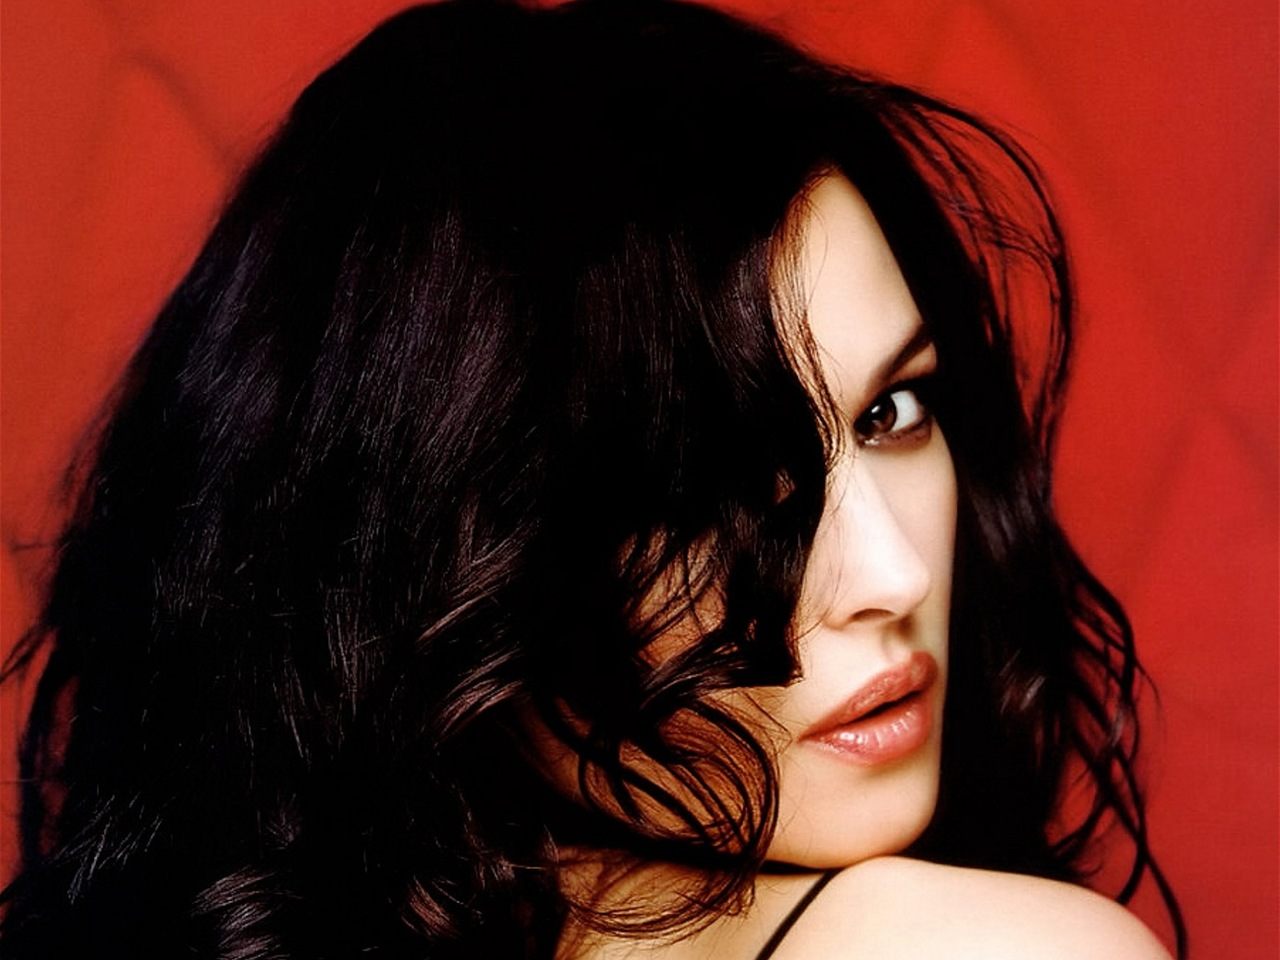 actor, amazing, cute, monica bellucci, photoshoot